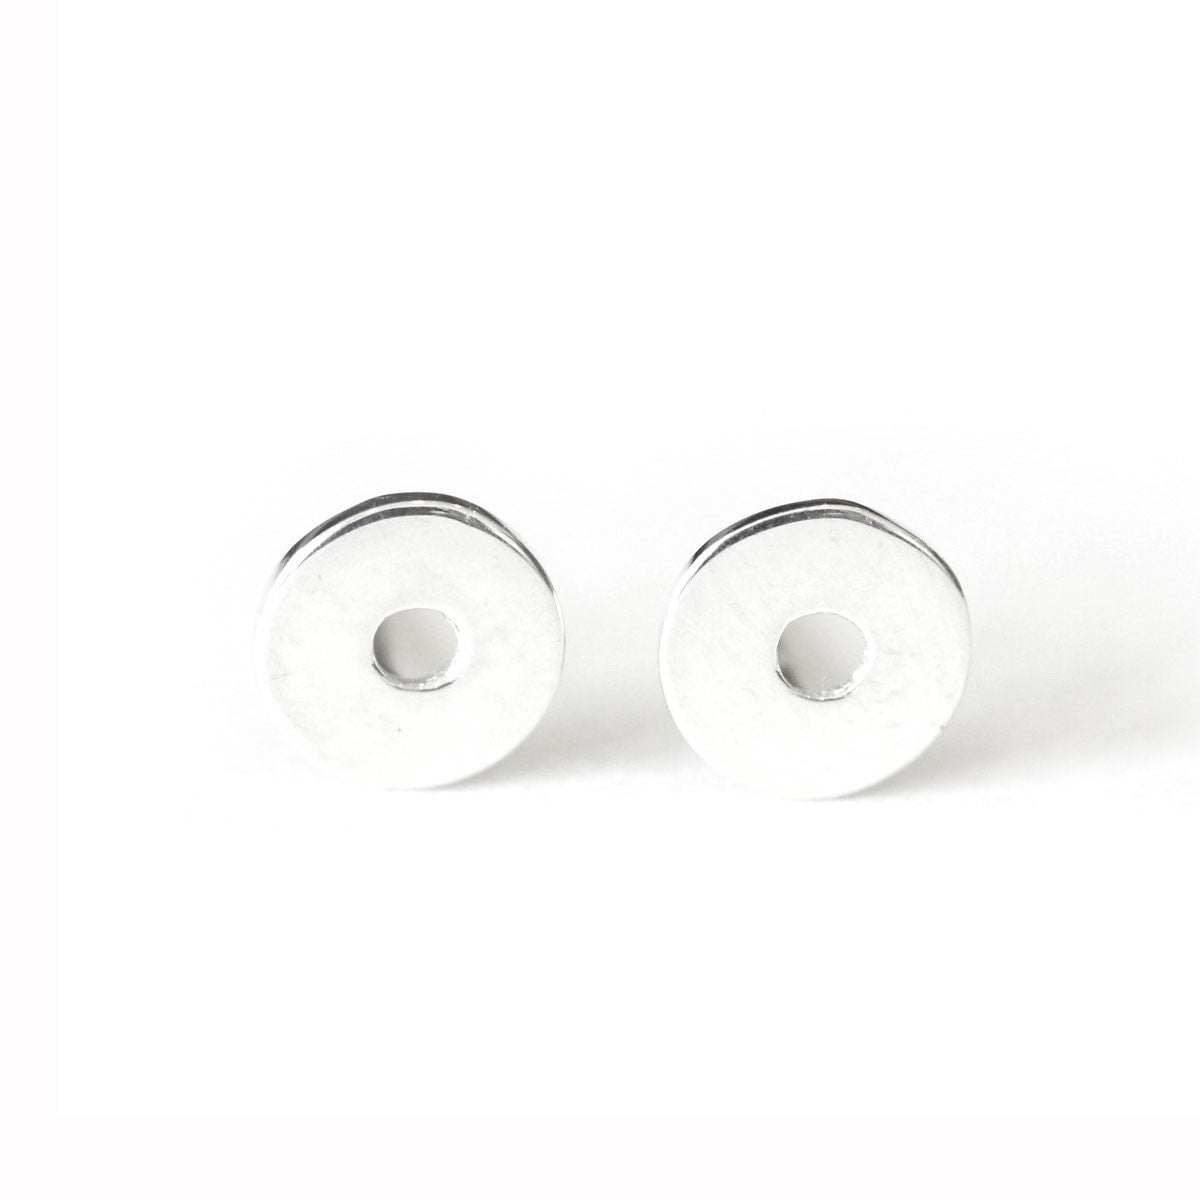 Washer Stud Earrings